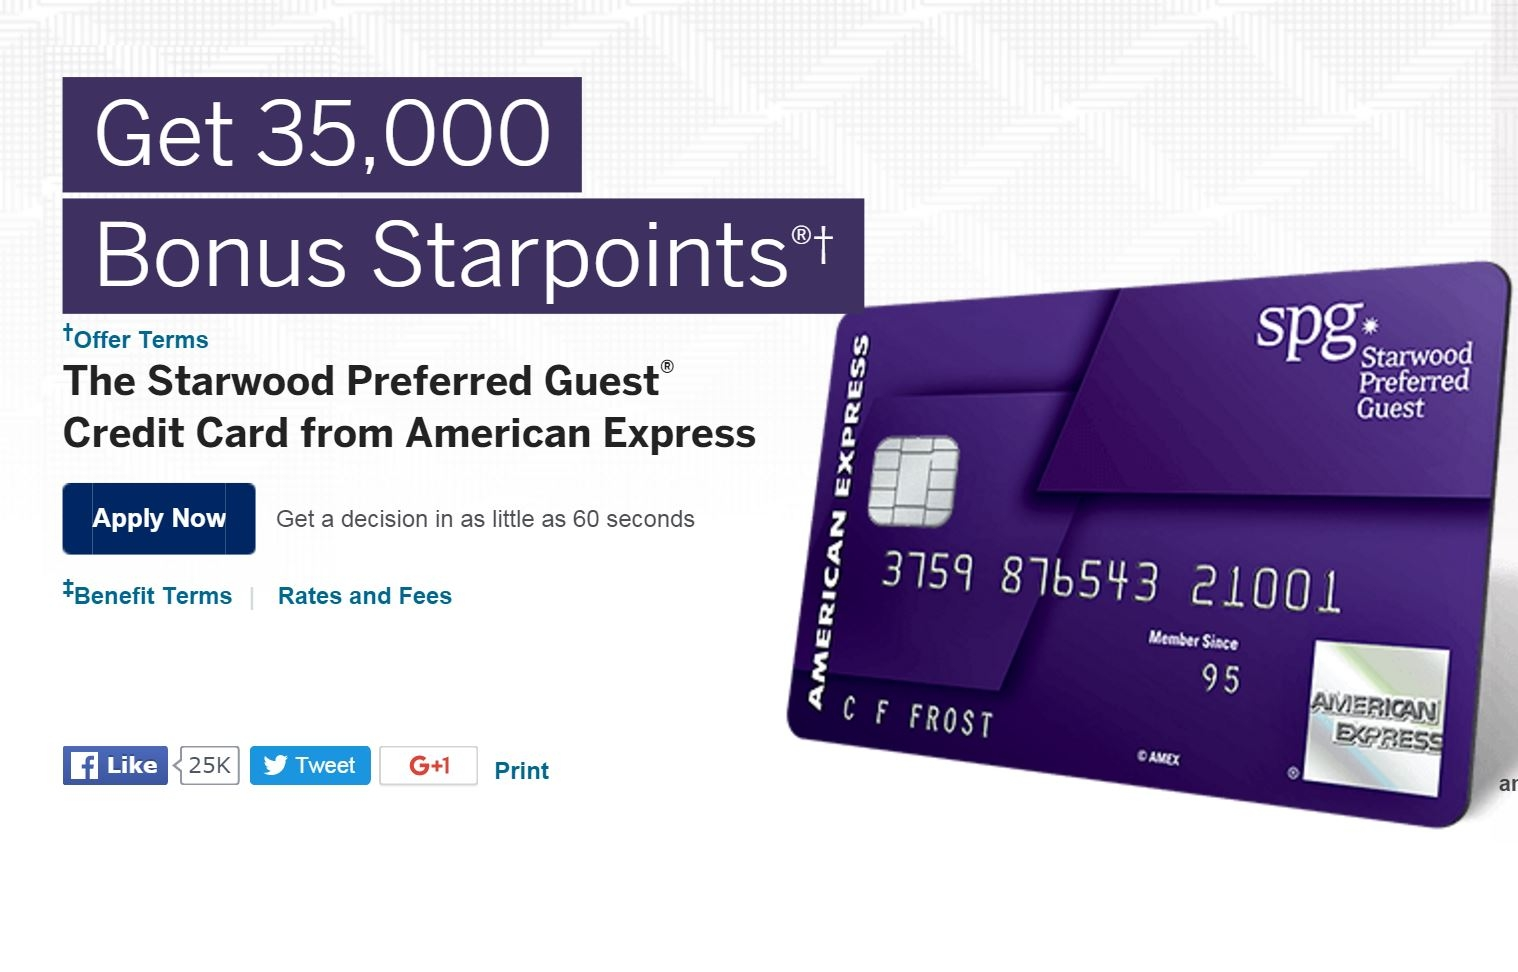 Starwood Preferred Guest AMEX card now offering 35,000 point sign-up bonus! Why you may want to get this card NOW!